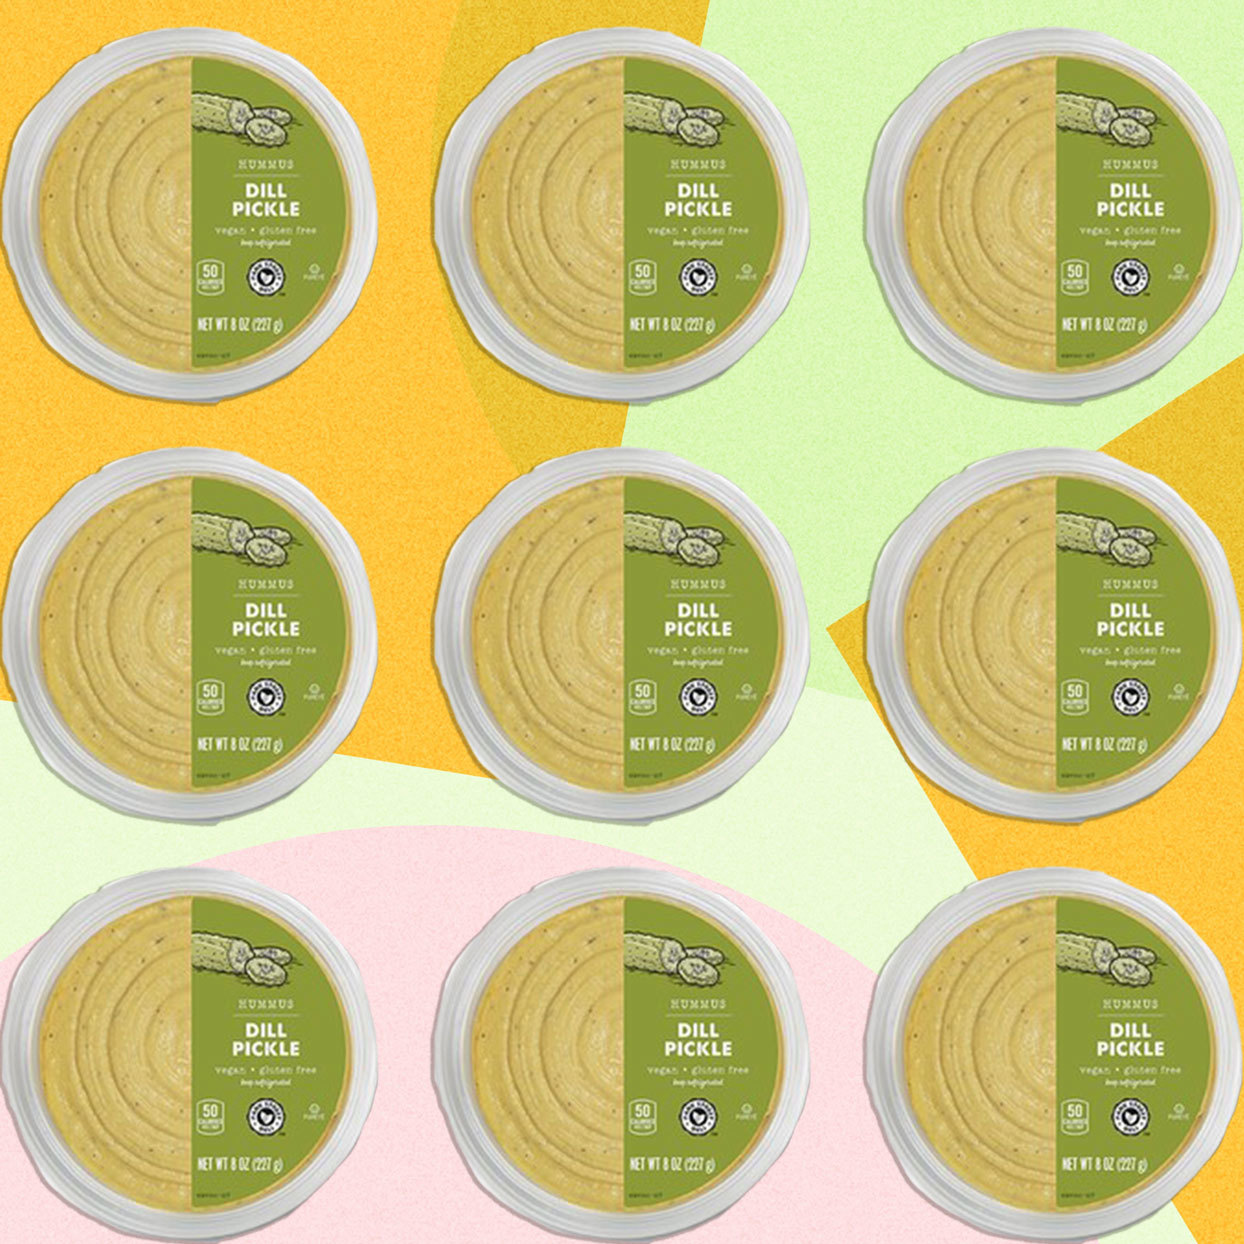 Containers of Aldi pickle hummus